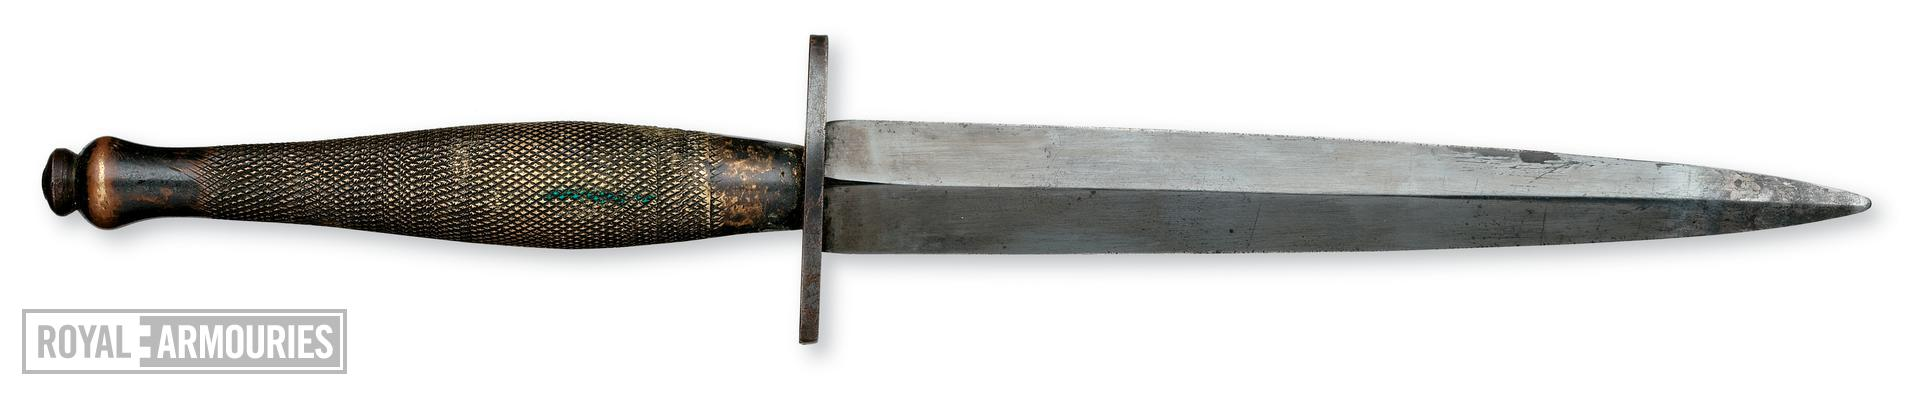 Fighting knife (Fairbairn- Sykes Fighting Knife, 2nd Pattern). British, 1941-43 (X.1654)